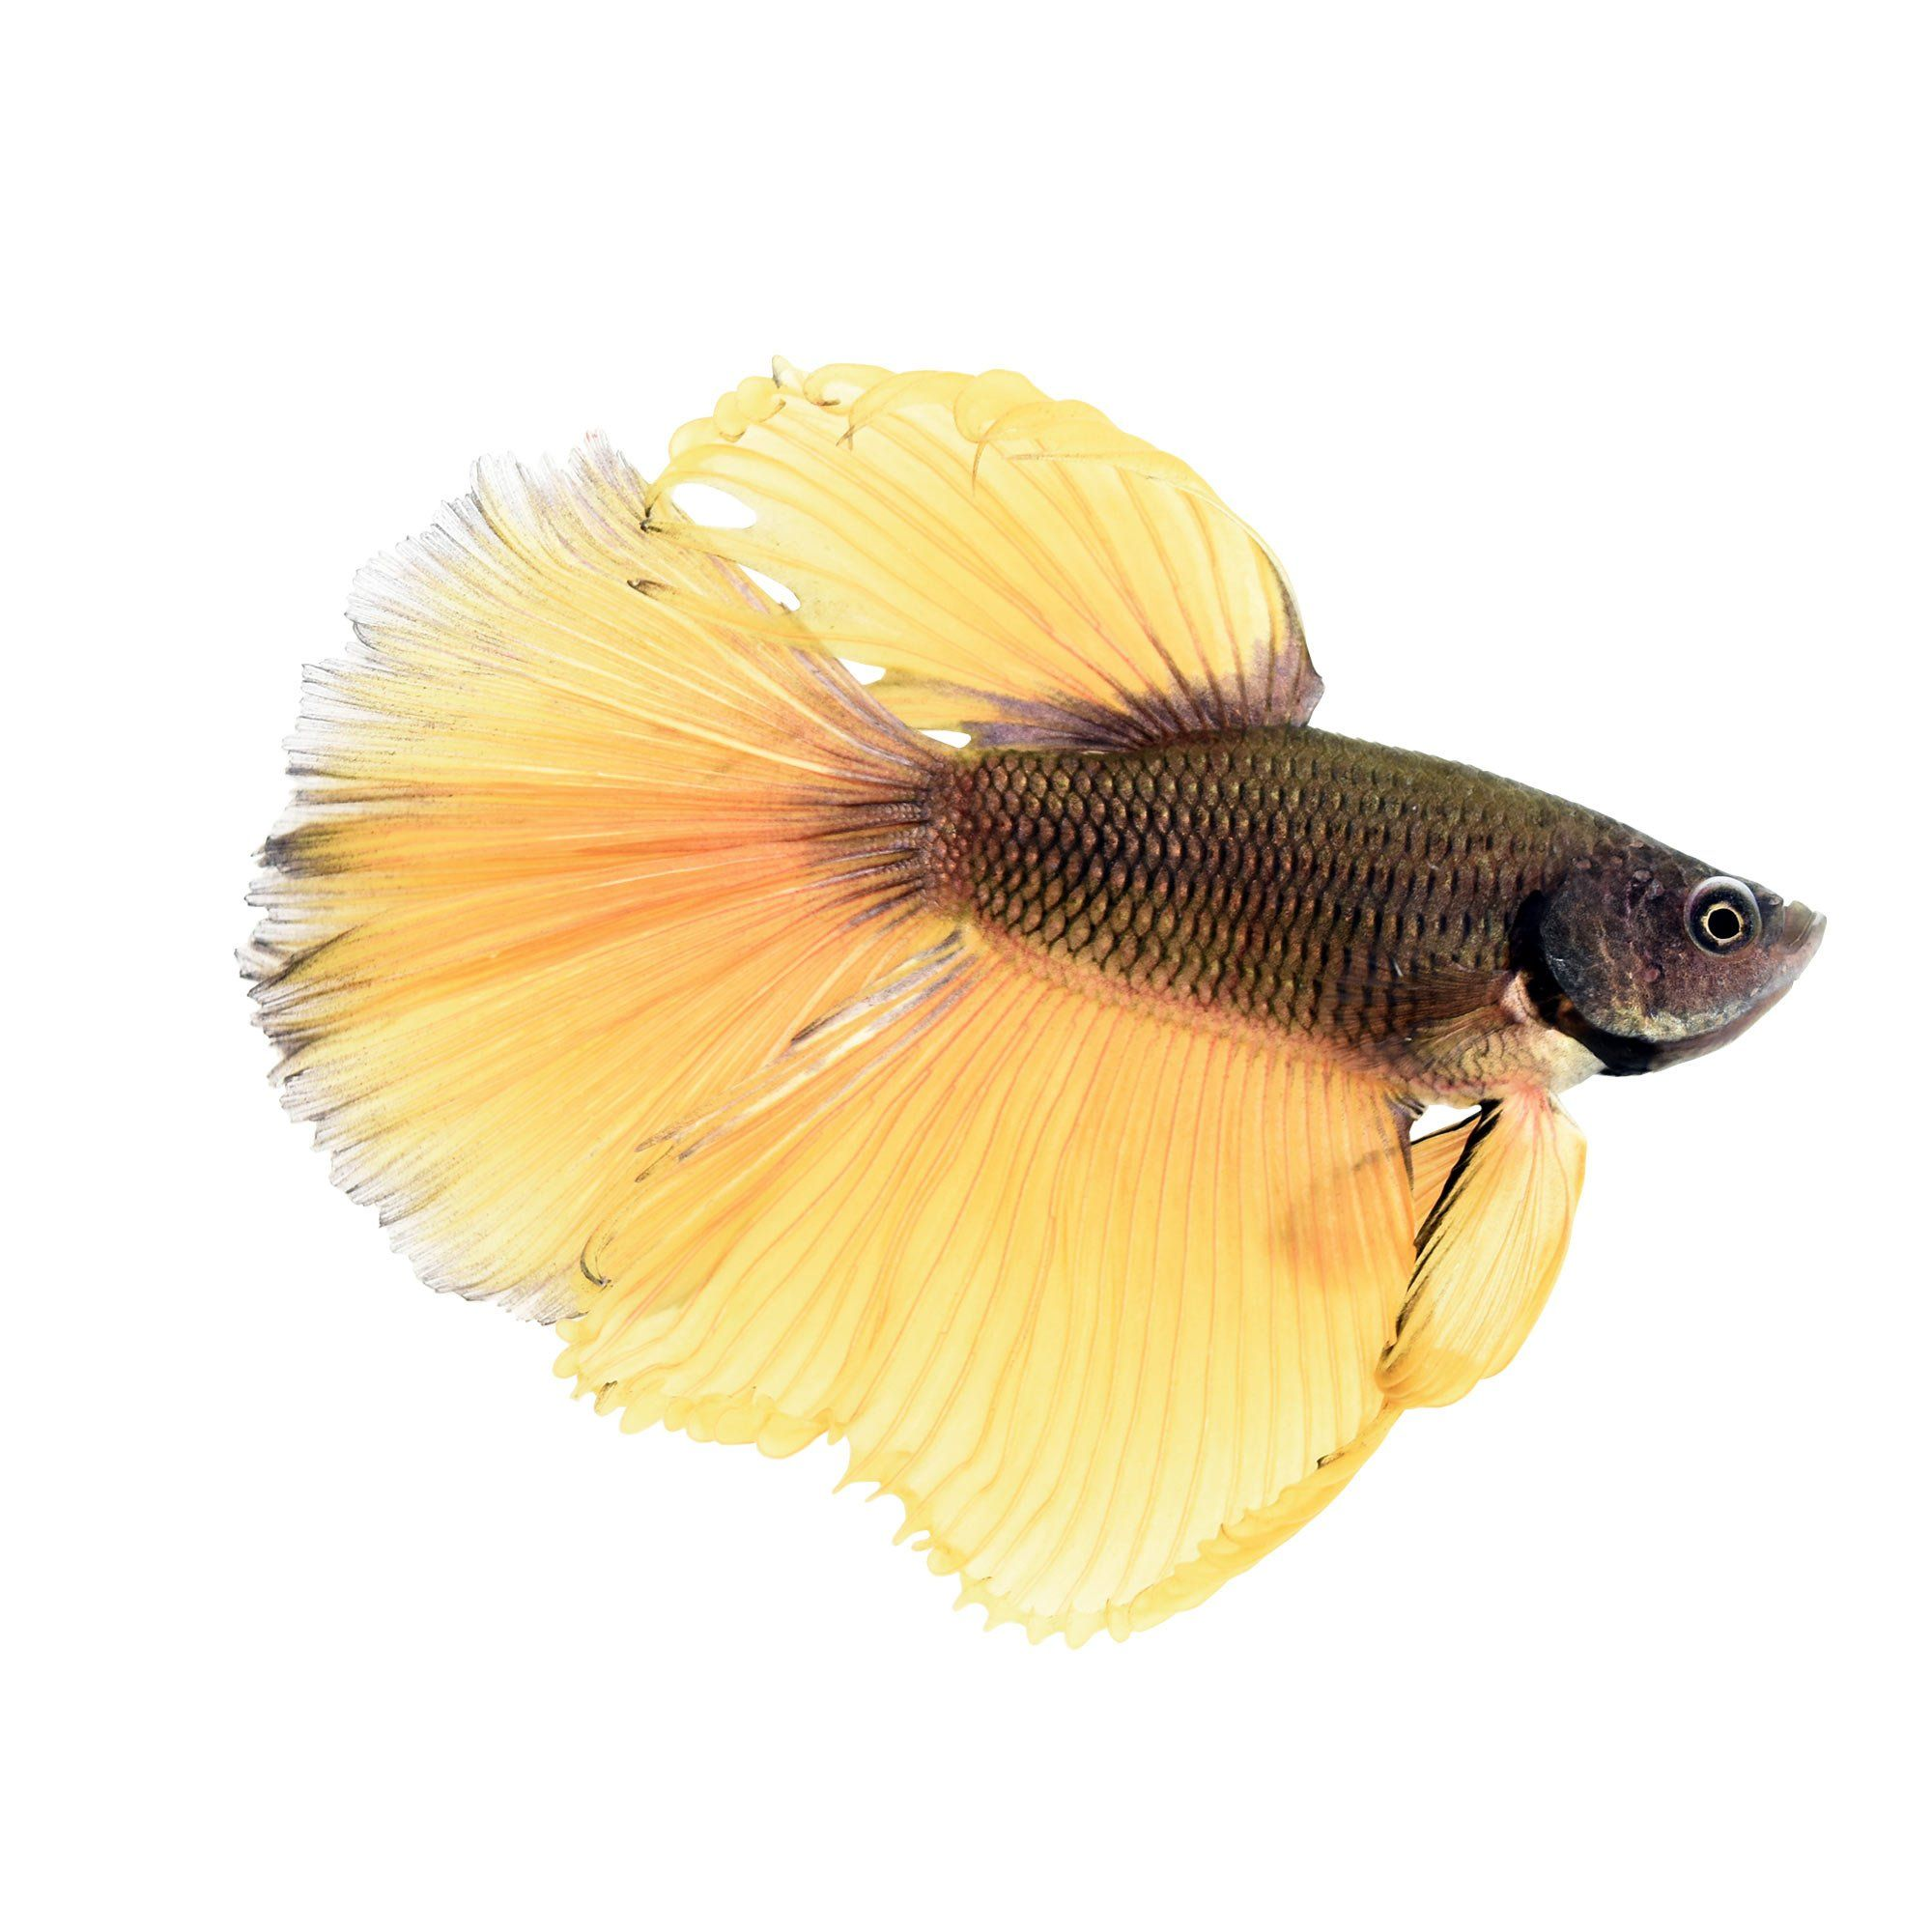 Male Bumblebee Bettas For Sale Order Online Petco Betta Siamese Fighting Fish Cool Fish Tanks